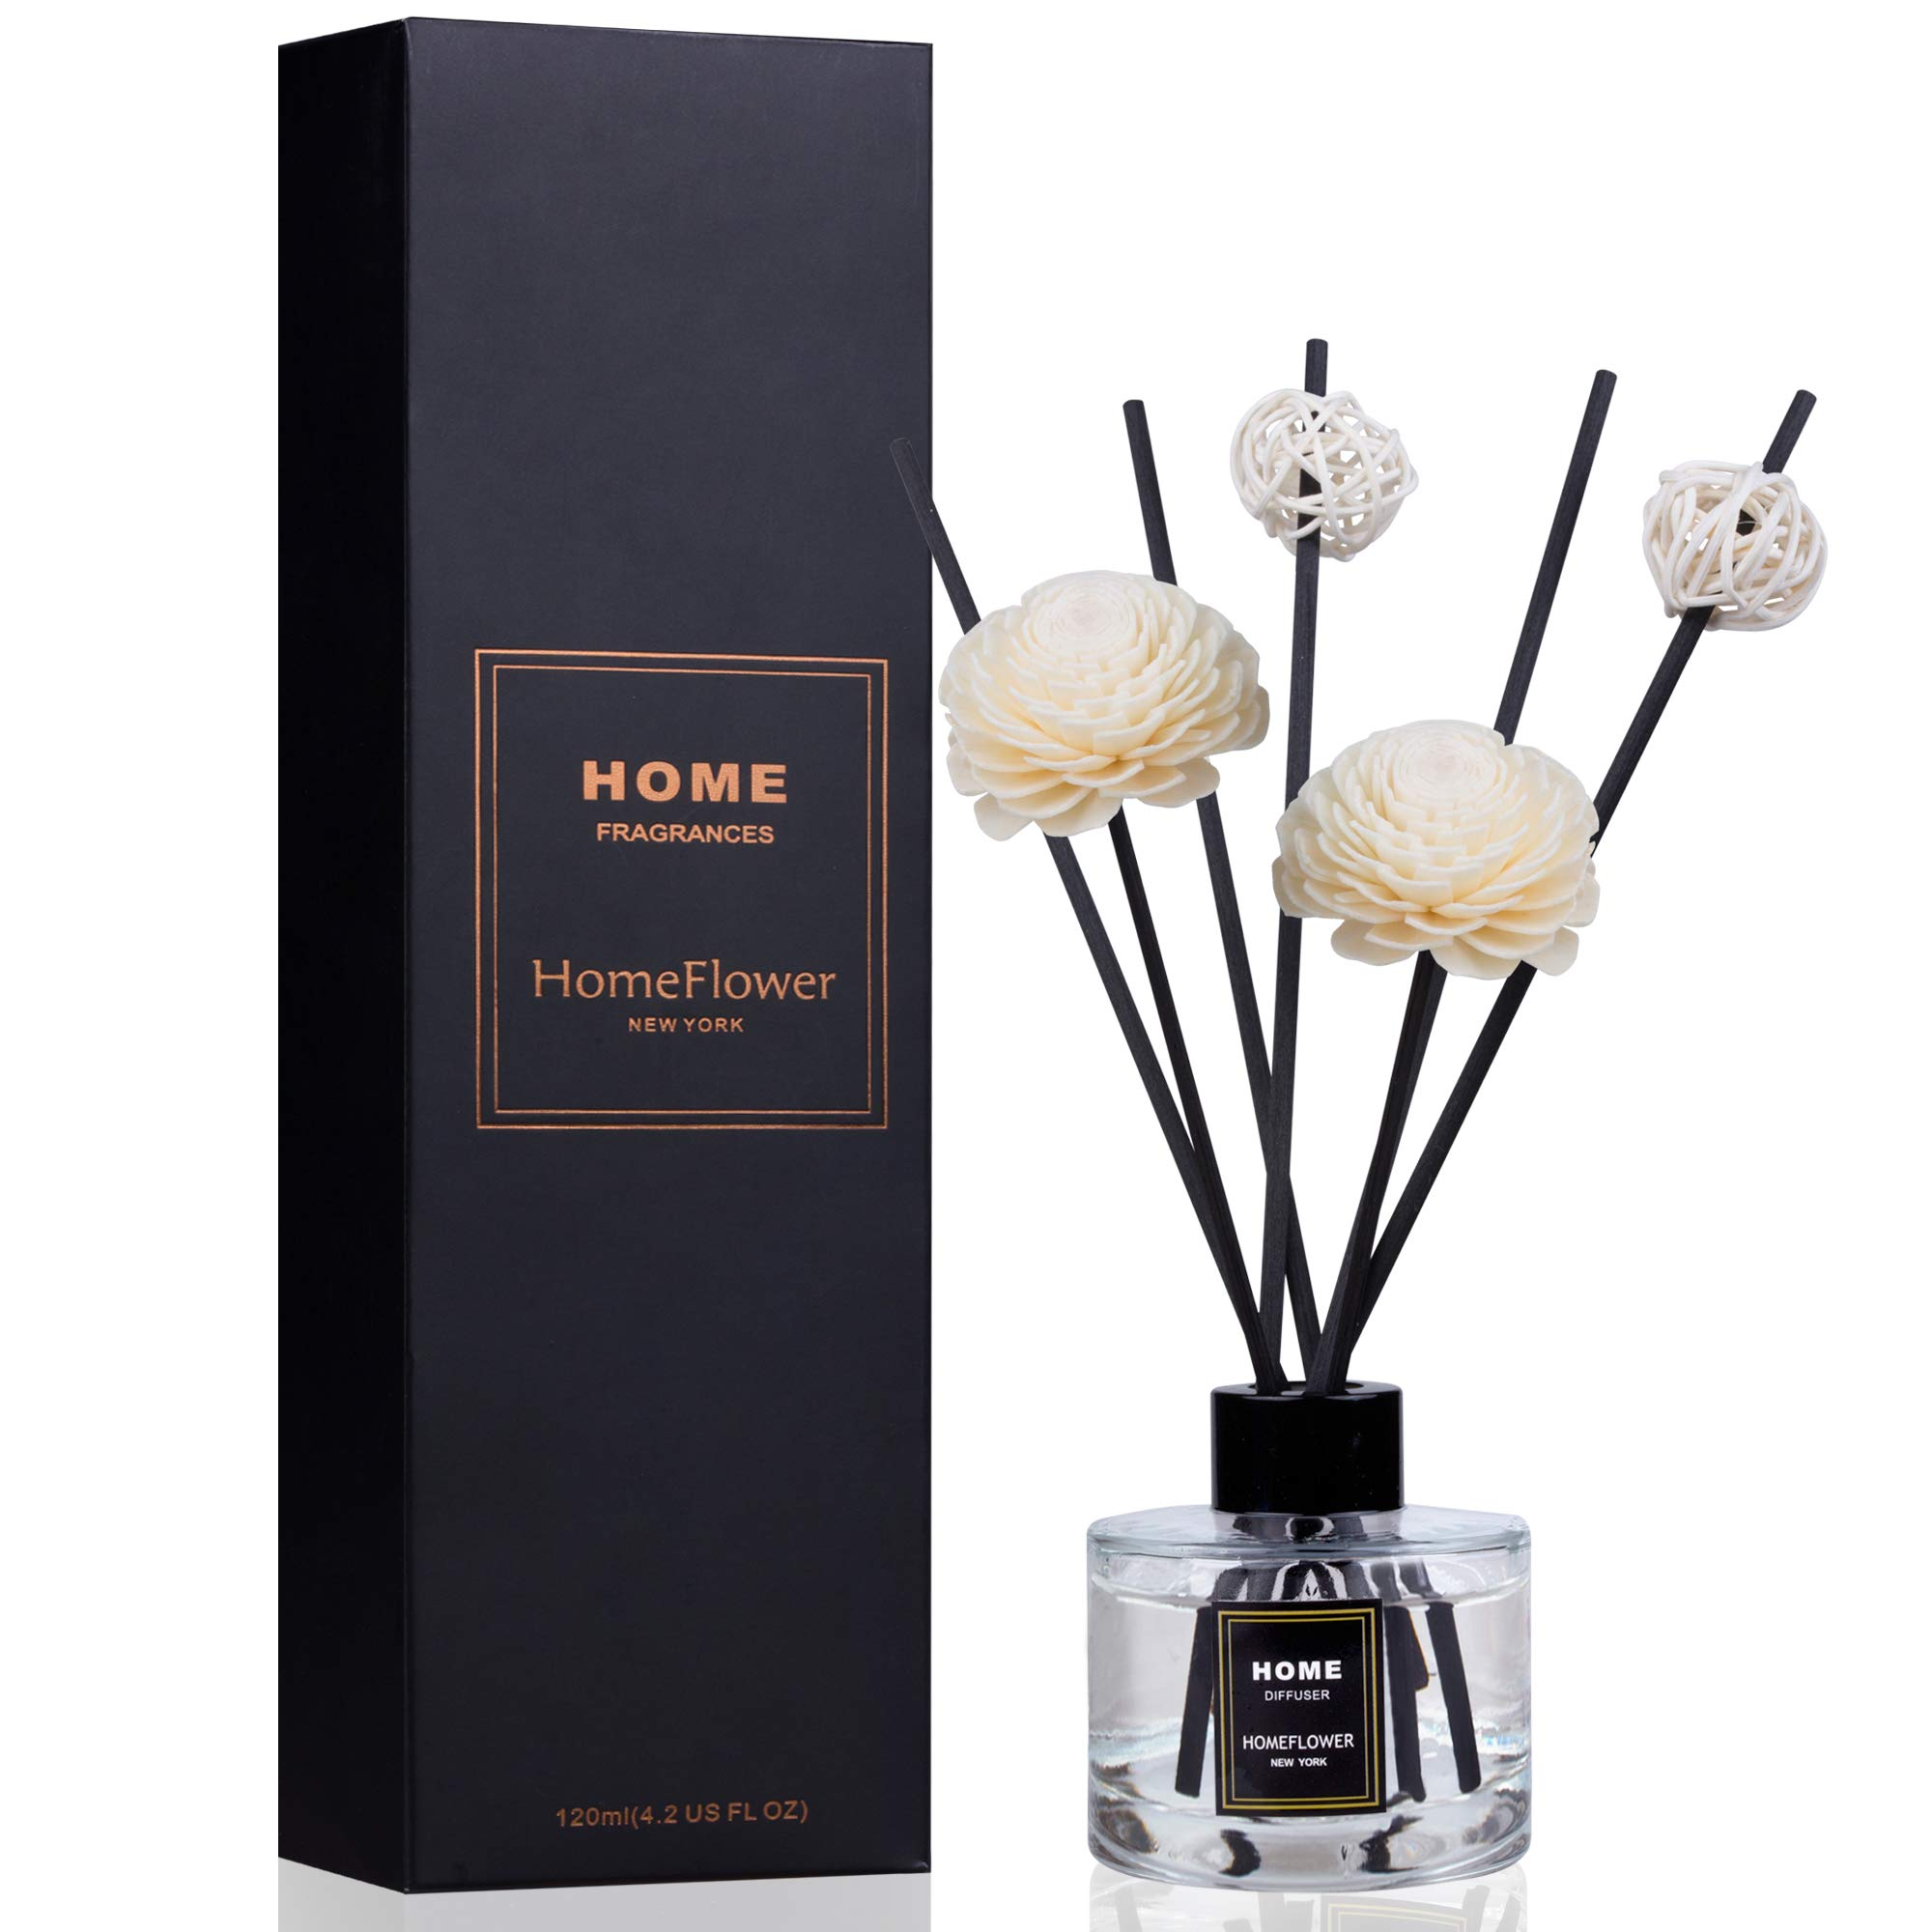 HomeFlower Reed Diffuser Set Lavender: Scent Sticks & Sola Flowers Included - Scented Liquid Fragrance Oil - Room Diffusers for Home or Bathroom - Made with FreshScent Premium Essential Oils - 4 oz by HomeFlower (Image #1)